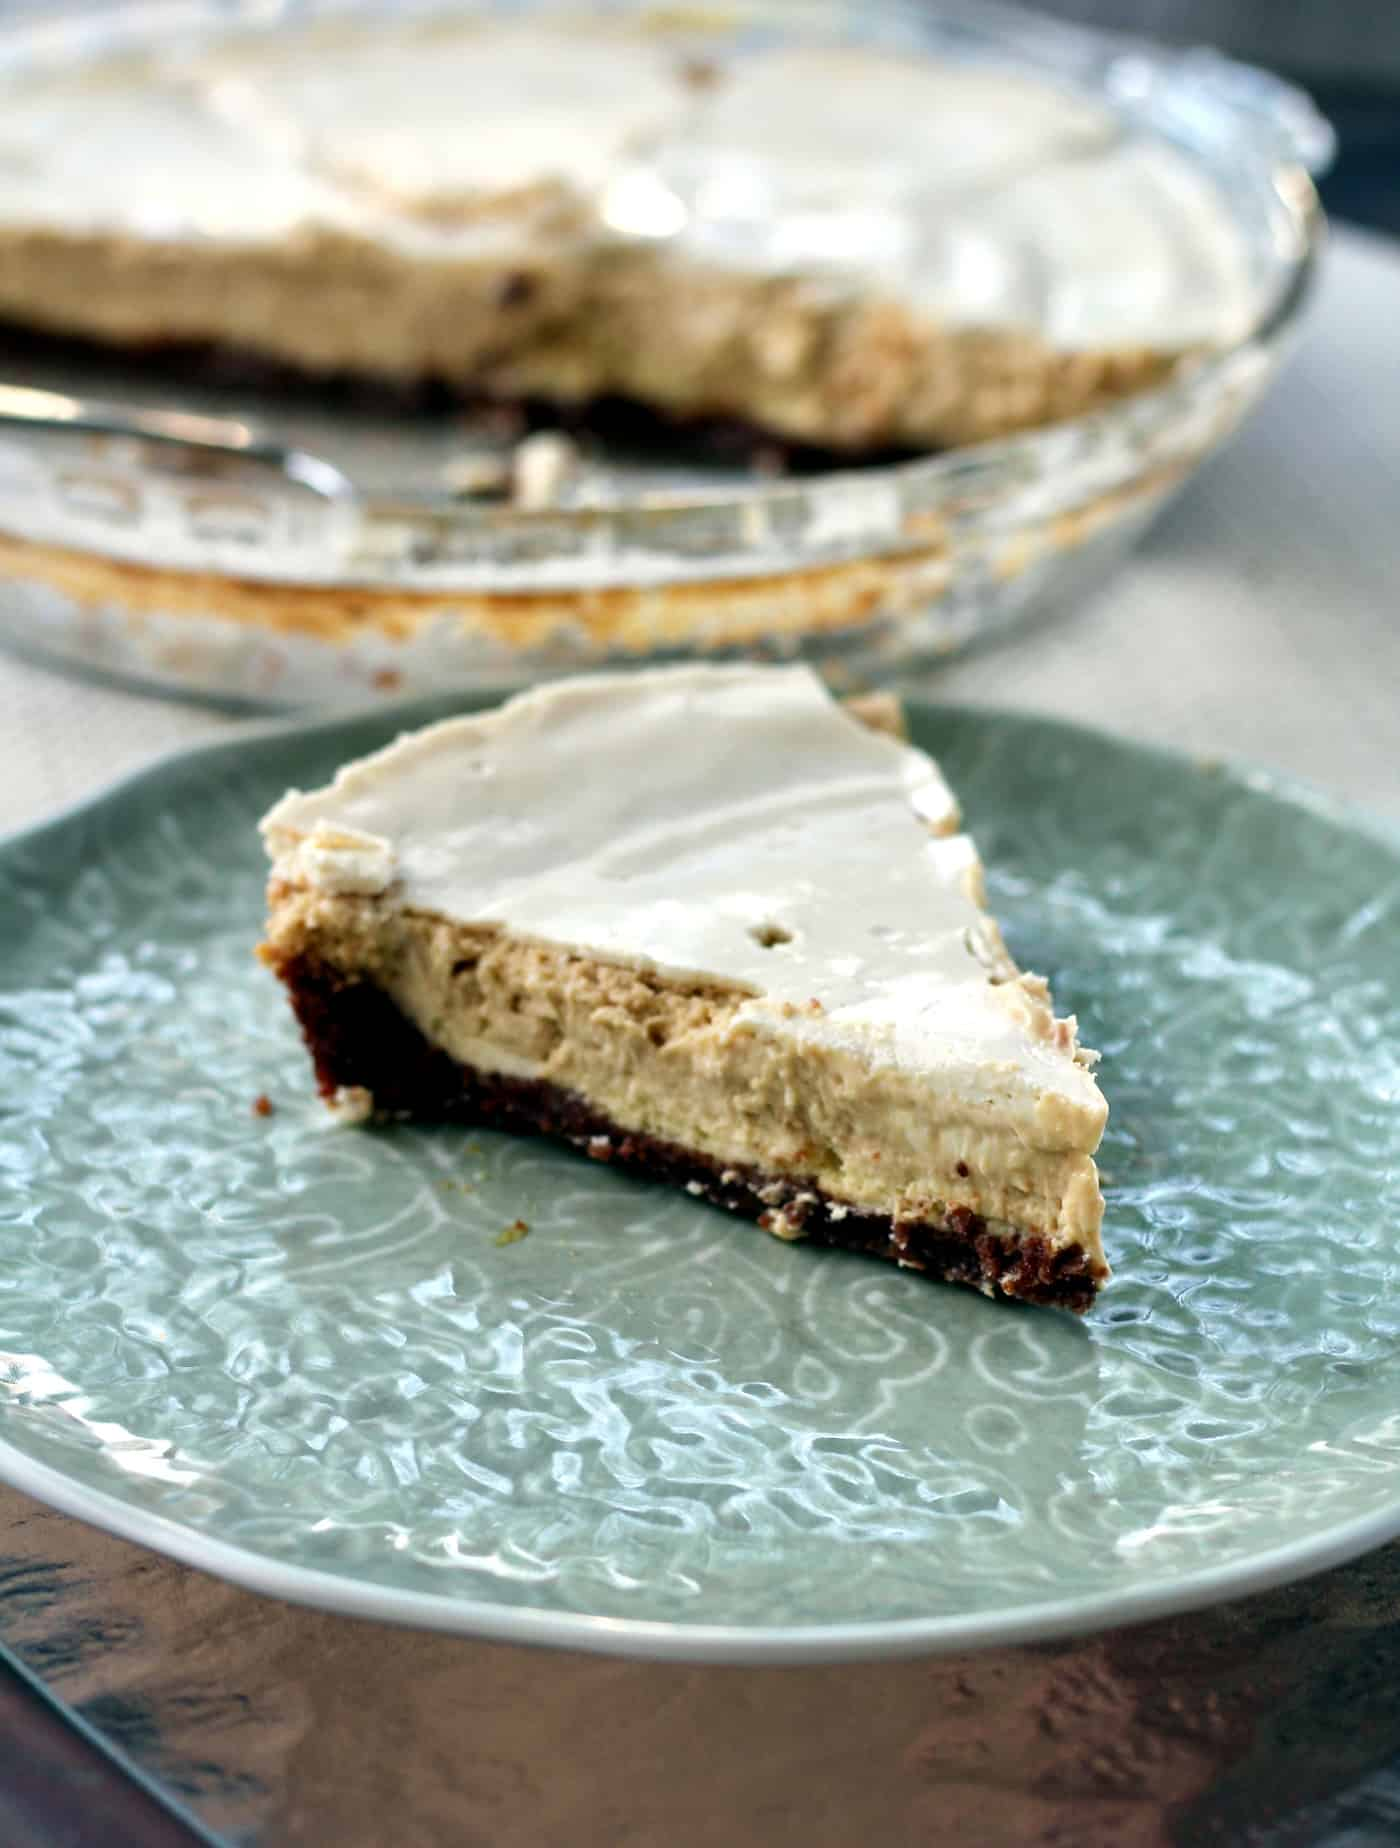 Sinfully Delicious Kahlua Cream Cheese Pie